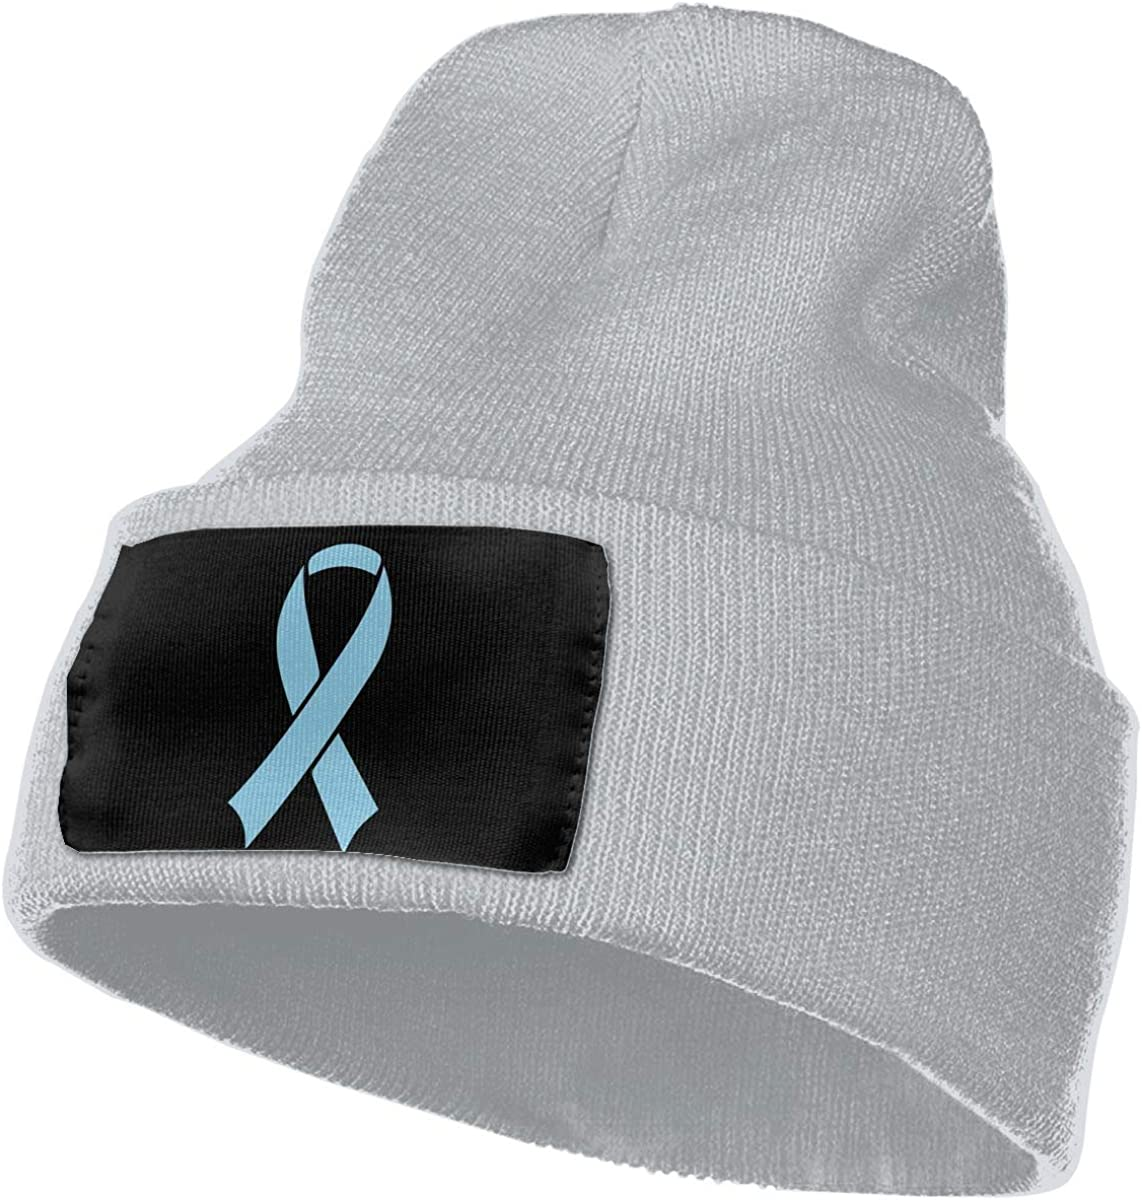 Prostate Cancer Awareness Ribbon Men /& Women Knitting Hats Stretchy /& Soft Beanie Cap Hat Beanie